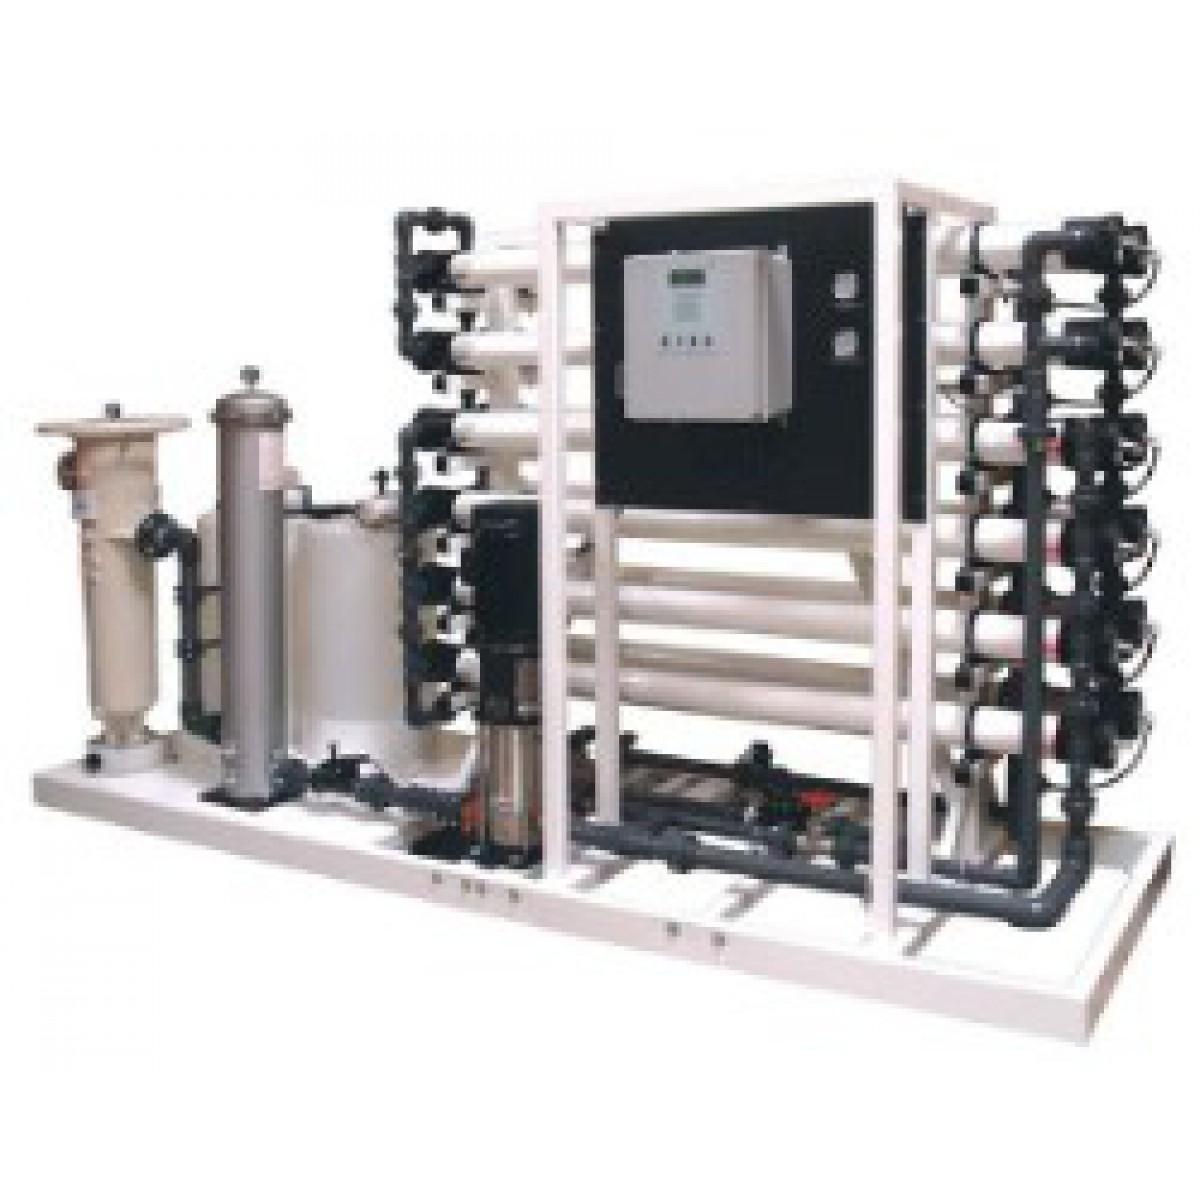 titan 30000 commercial reverse osmosis system. Black Bedroom Furniture Sets. Home Design Ideas